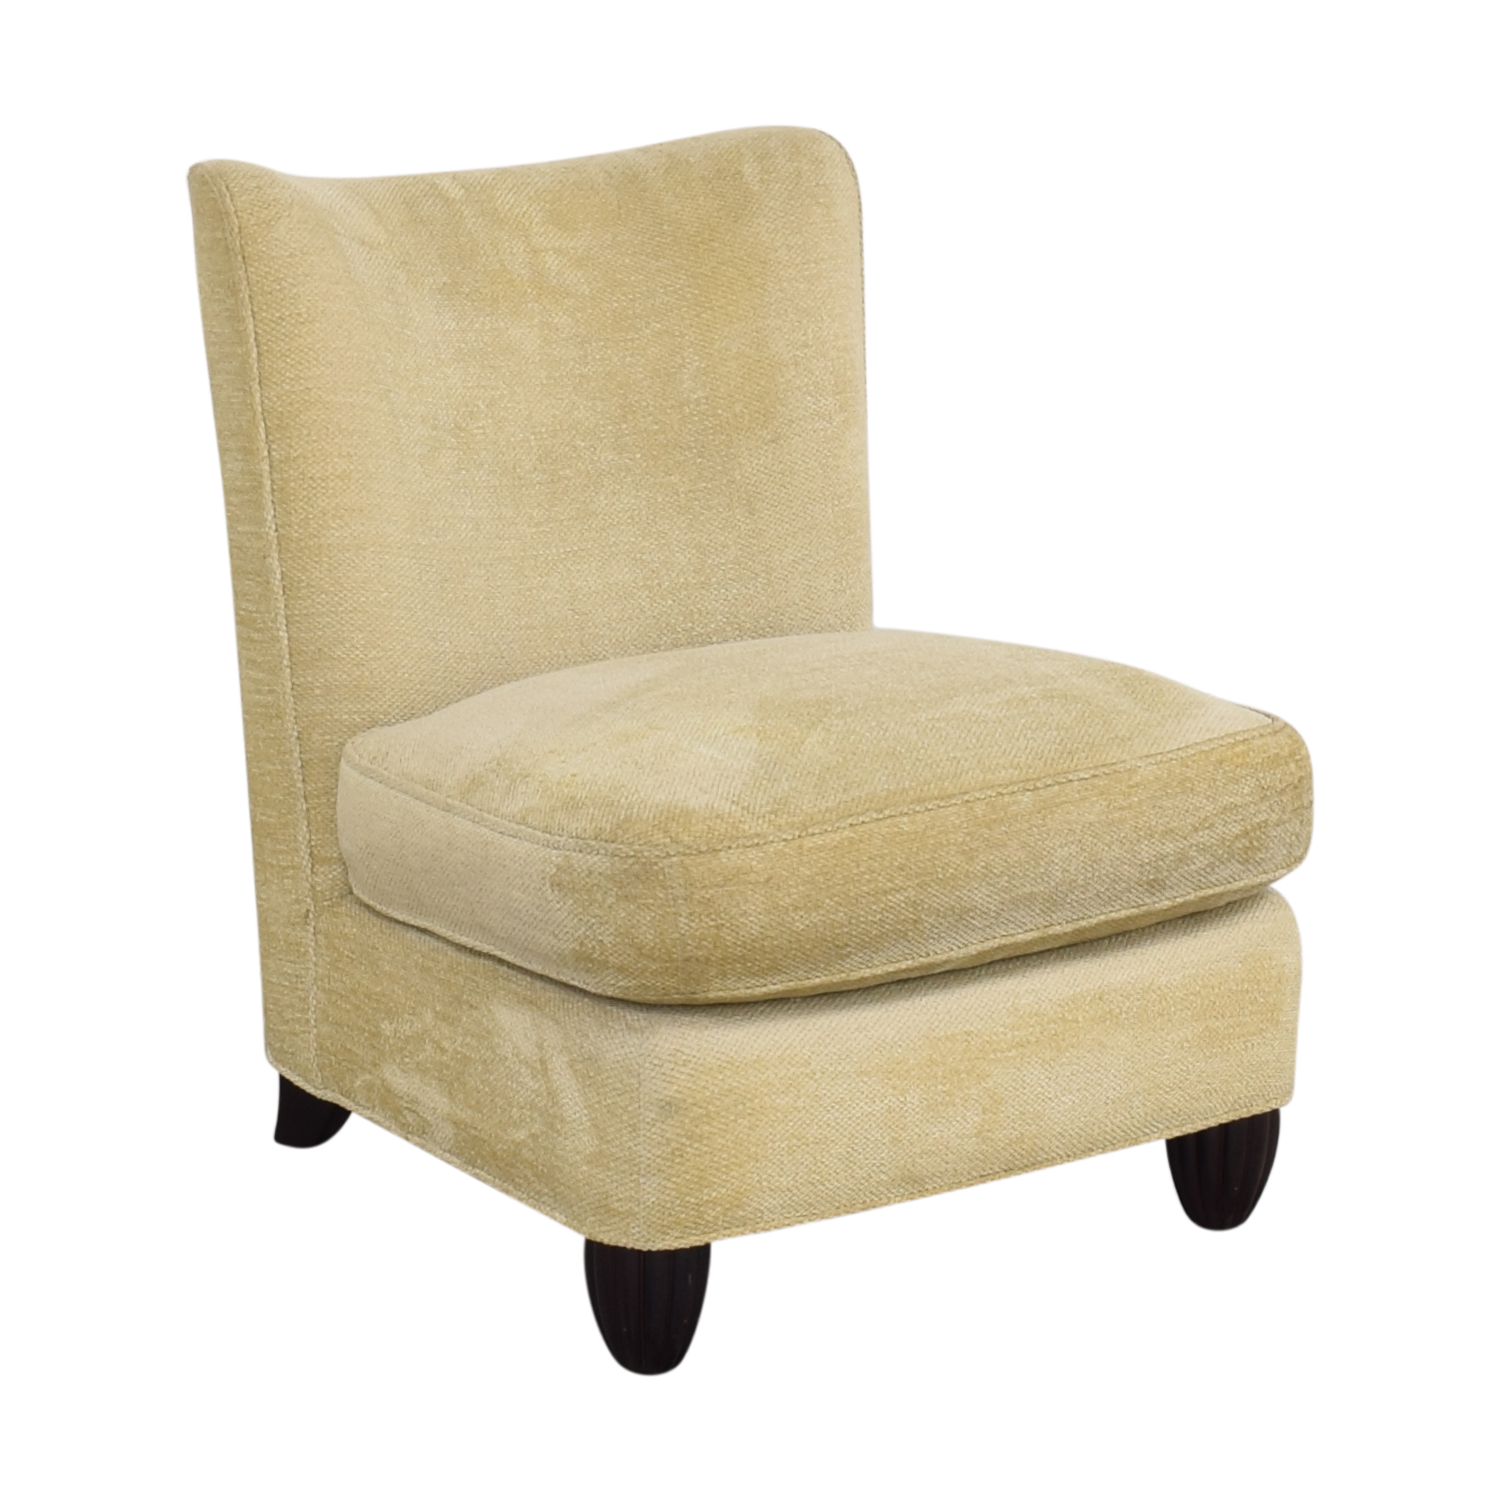 Baker Furniture Baker Furniture Barbara Barry Slipper Chair beige